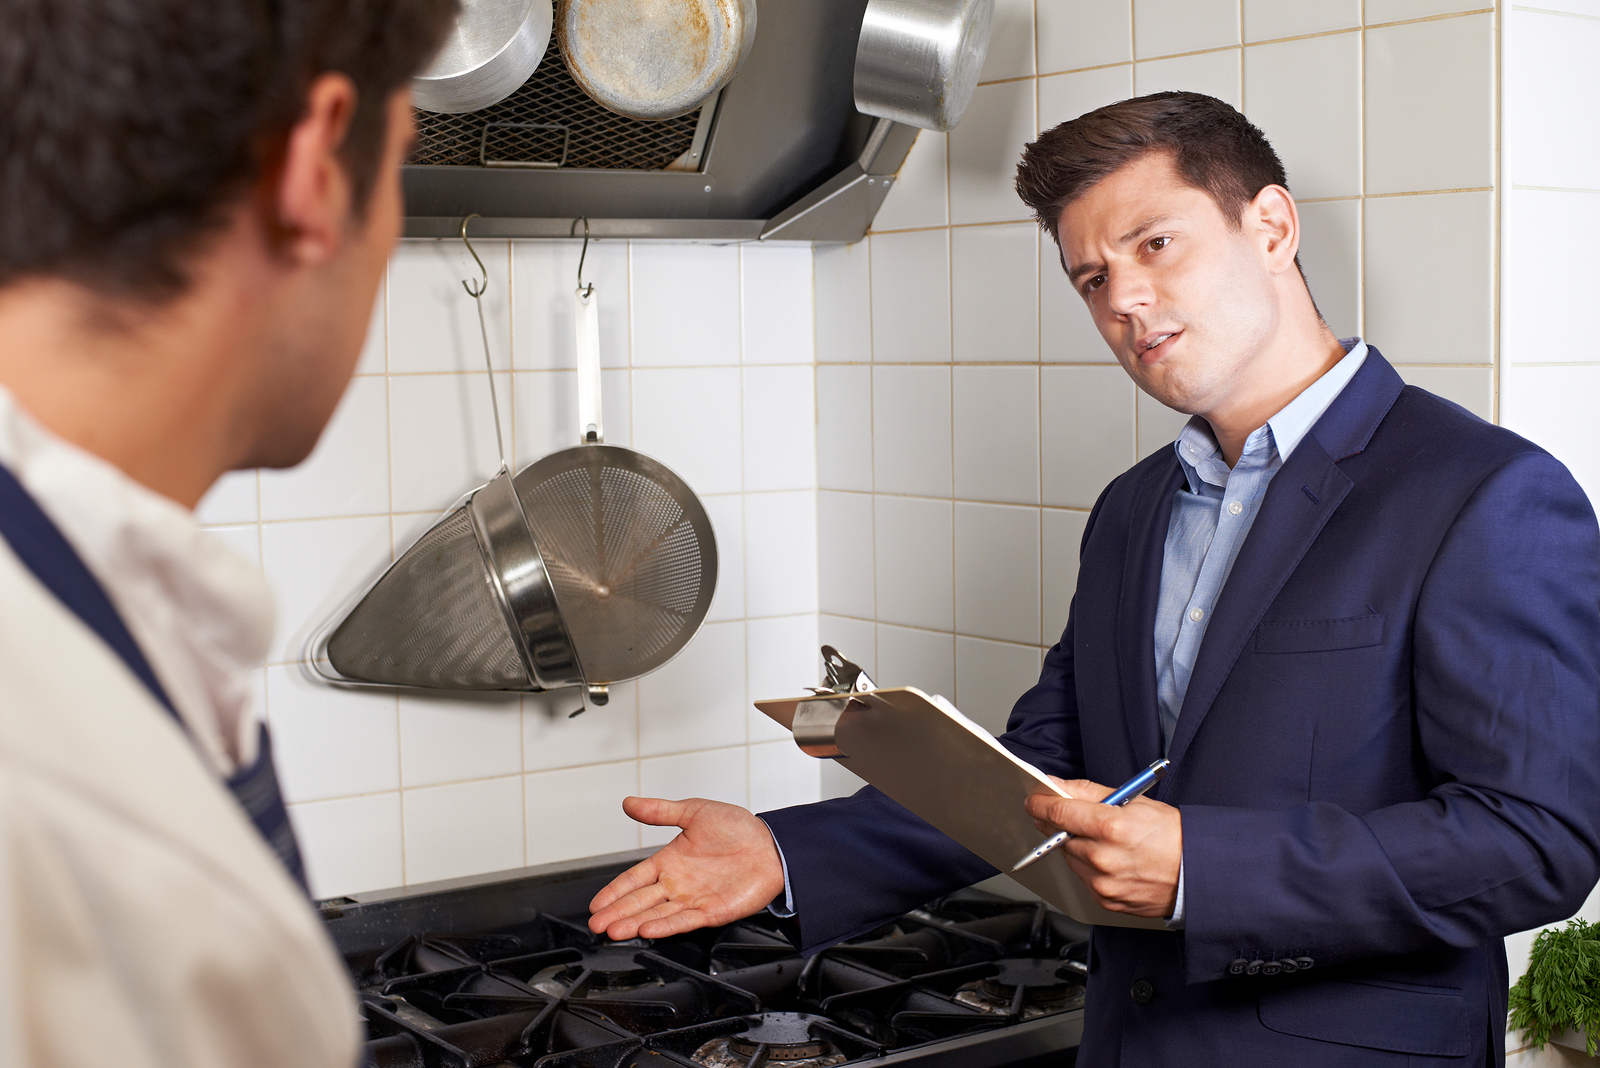 Training Staff to Spot Fire Hazards in a Commercial Kitchen